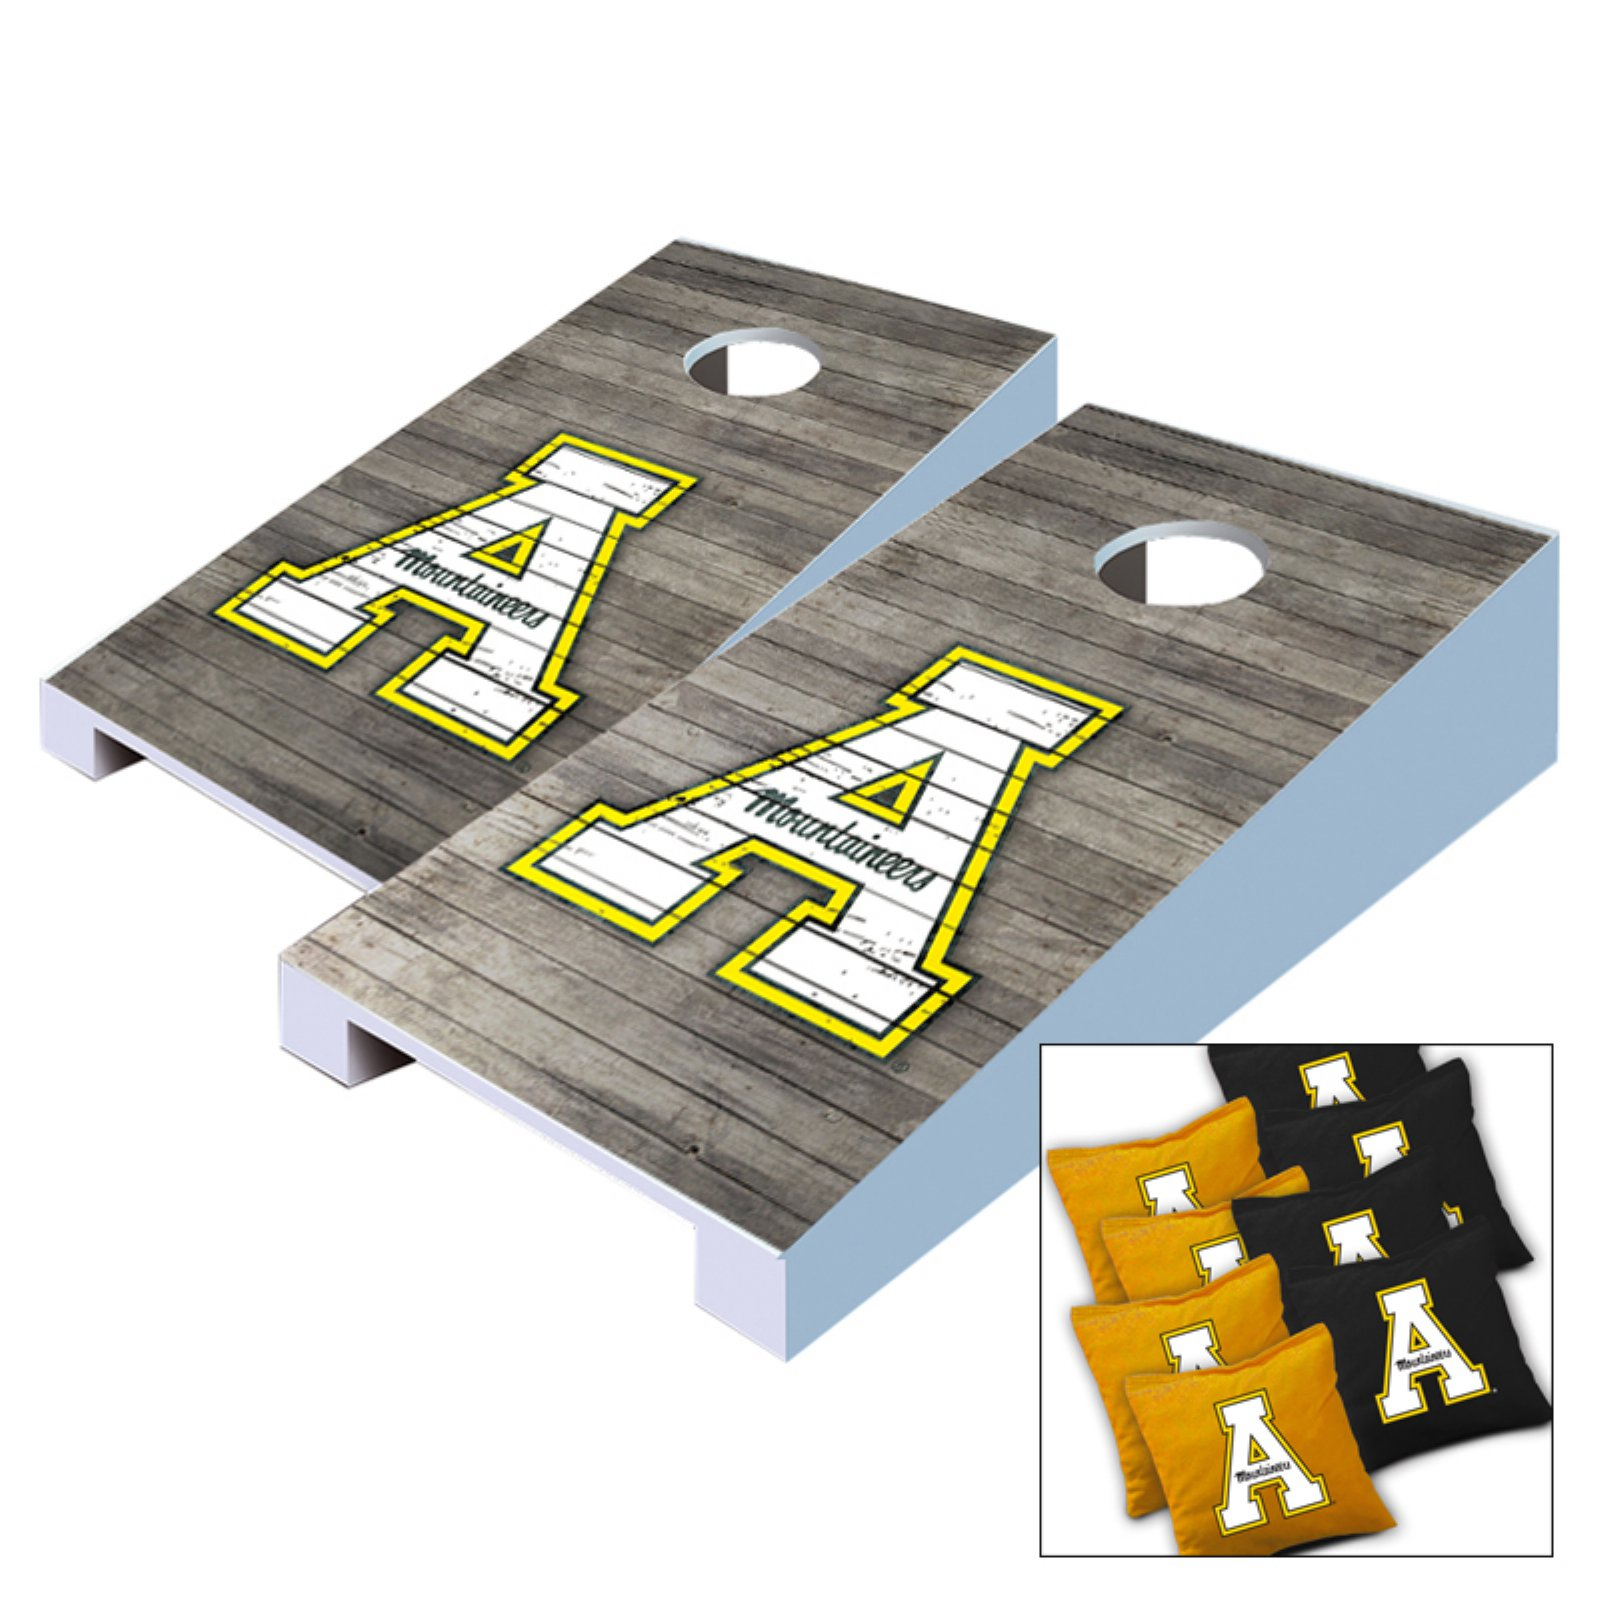 NCAA Distressed Tabletop Cornhole Set by AJJ Cornhole